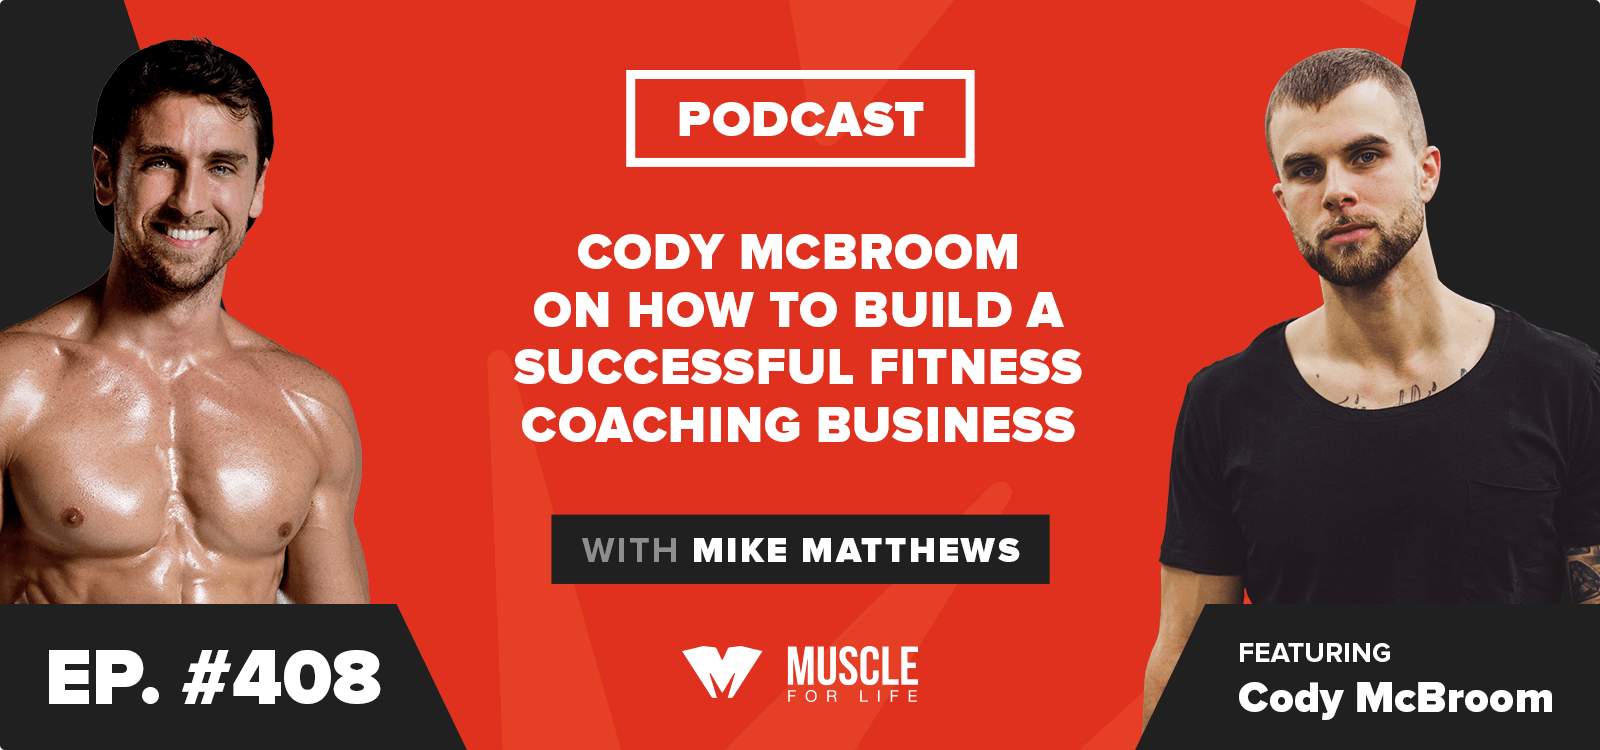 Cody McBroom on How to Build a Successful Fitness Coaching Business